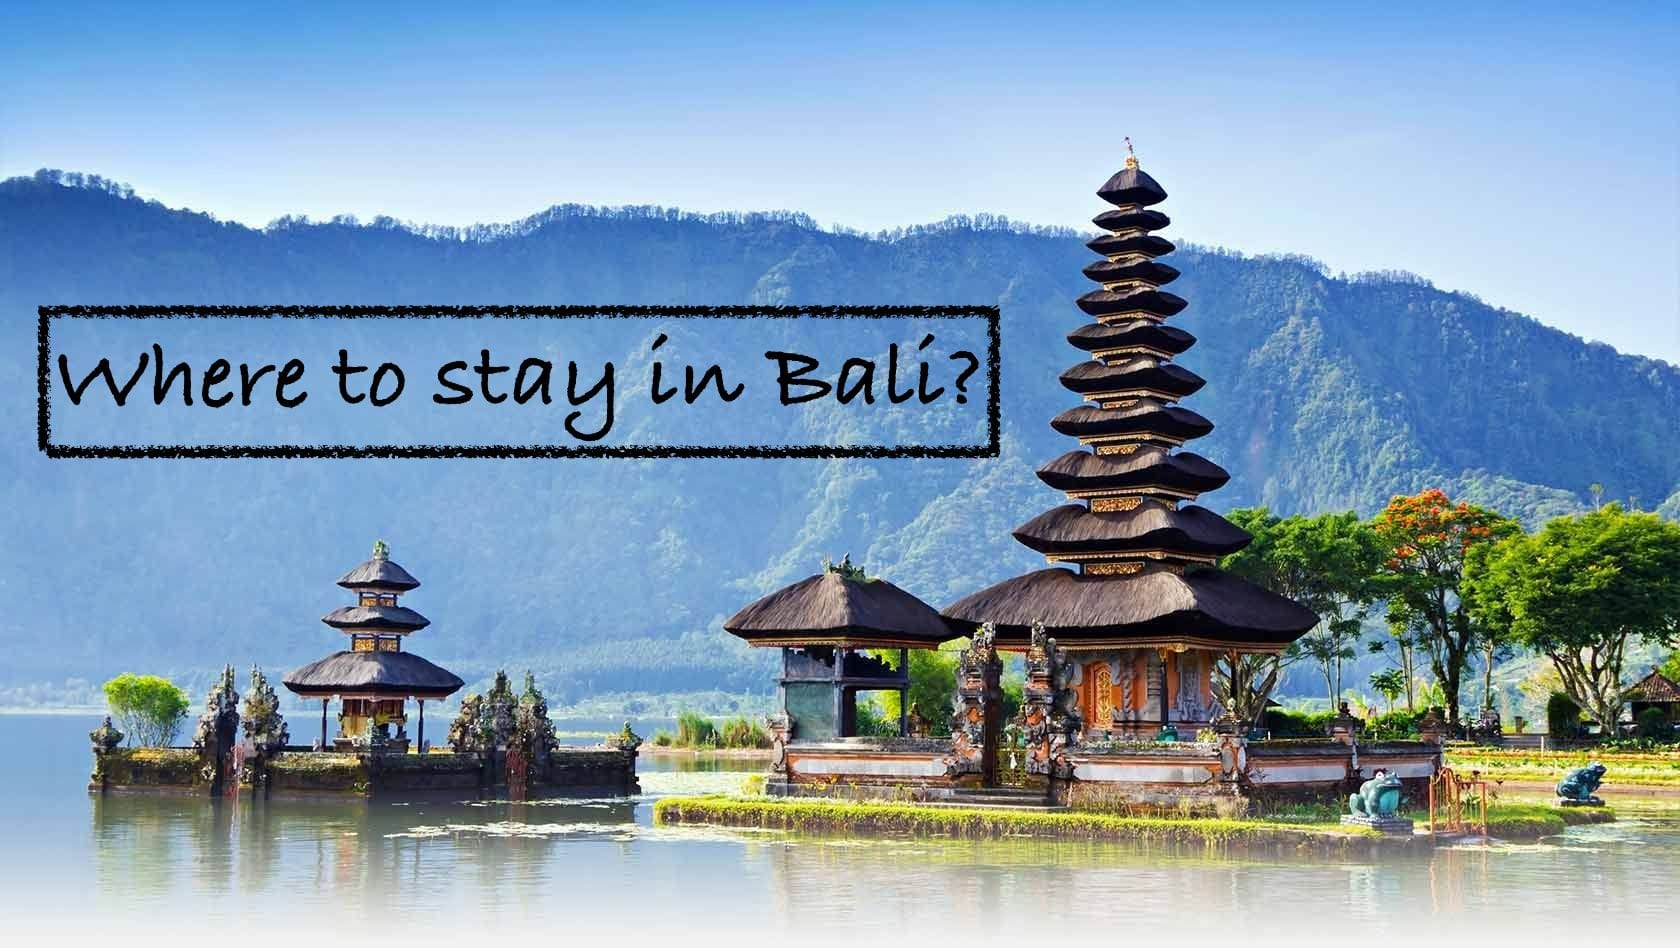 Where to stay in bali indonesia for Where to stay in bali indonesia